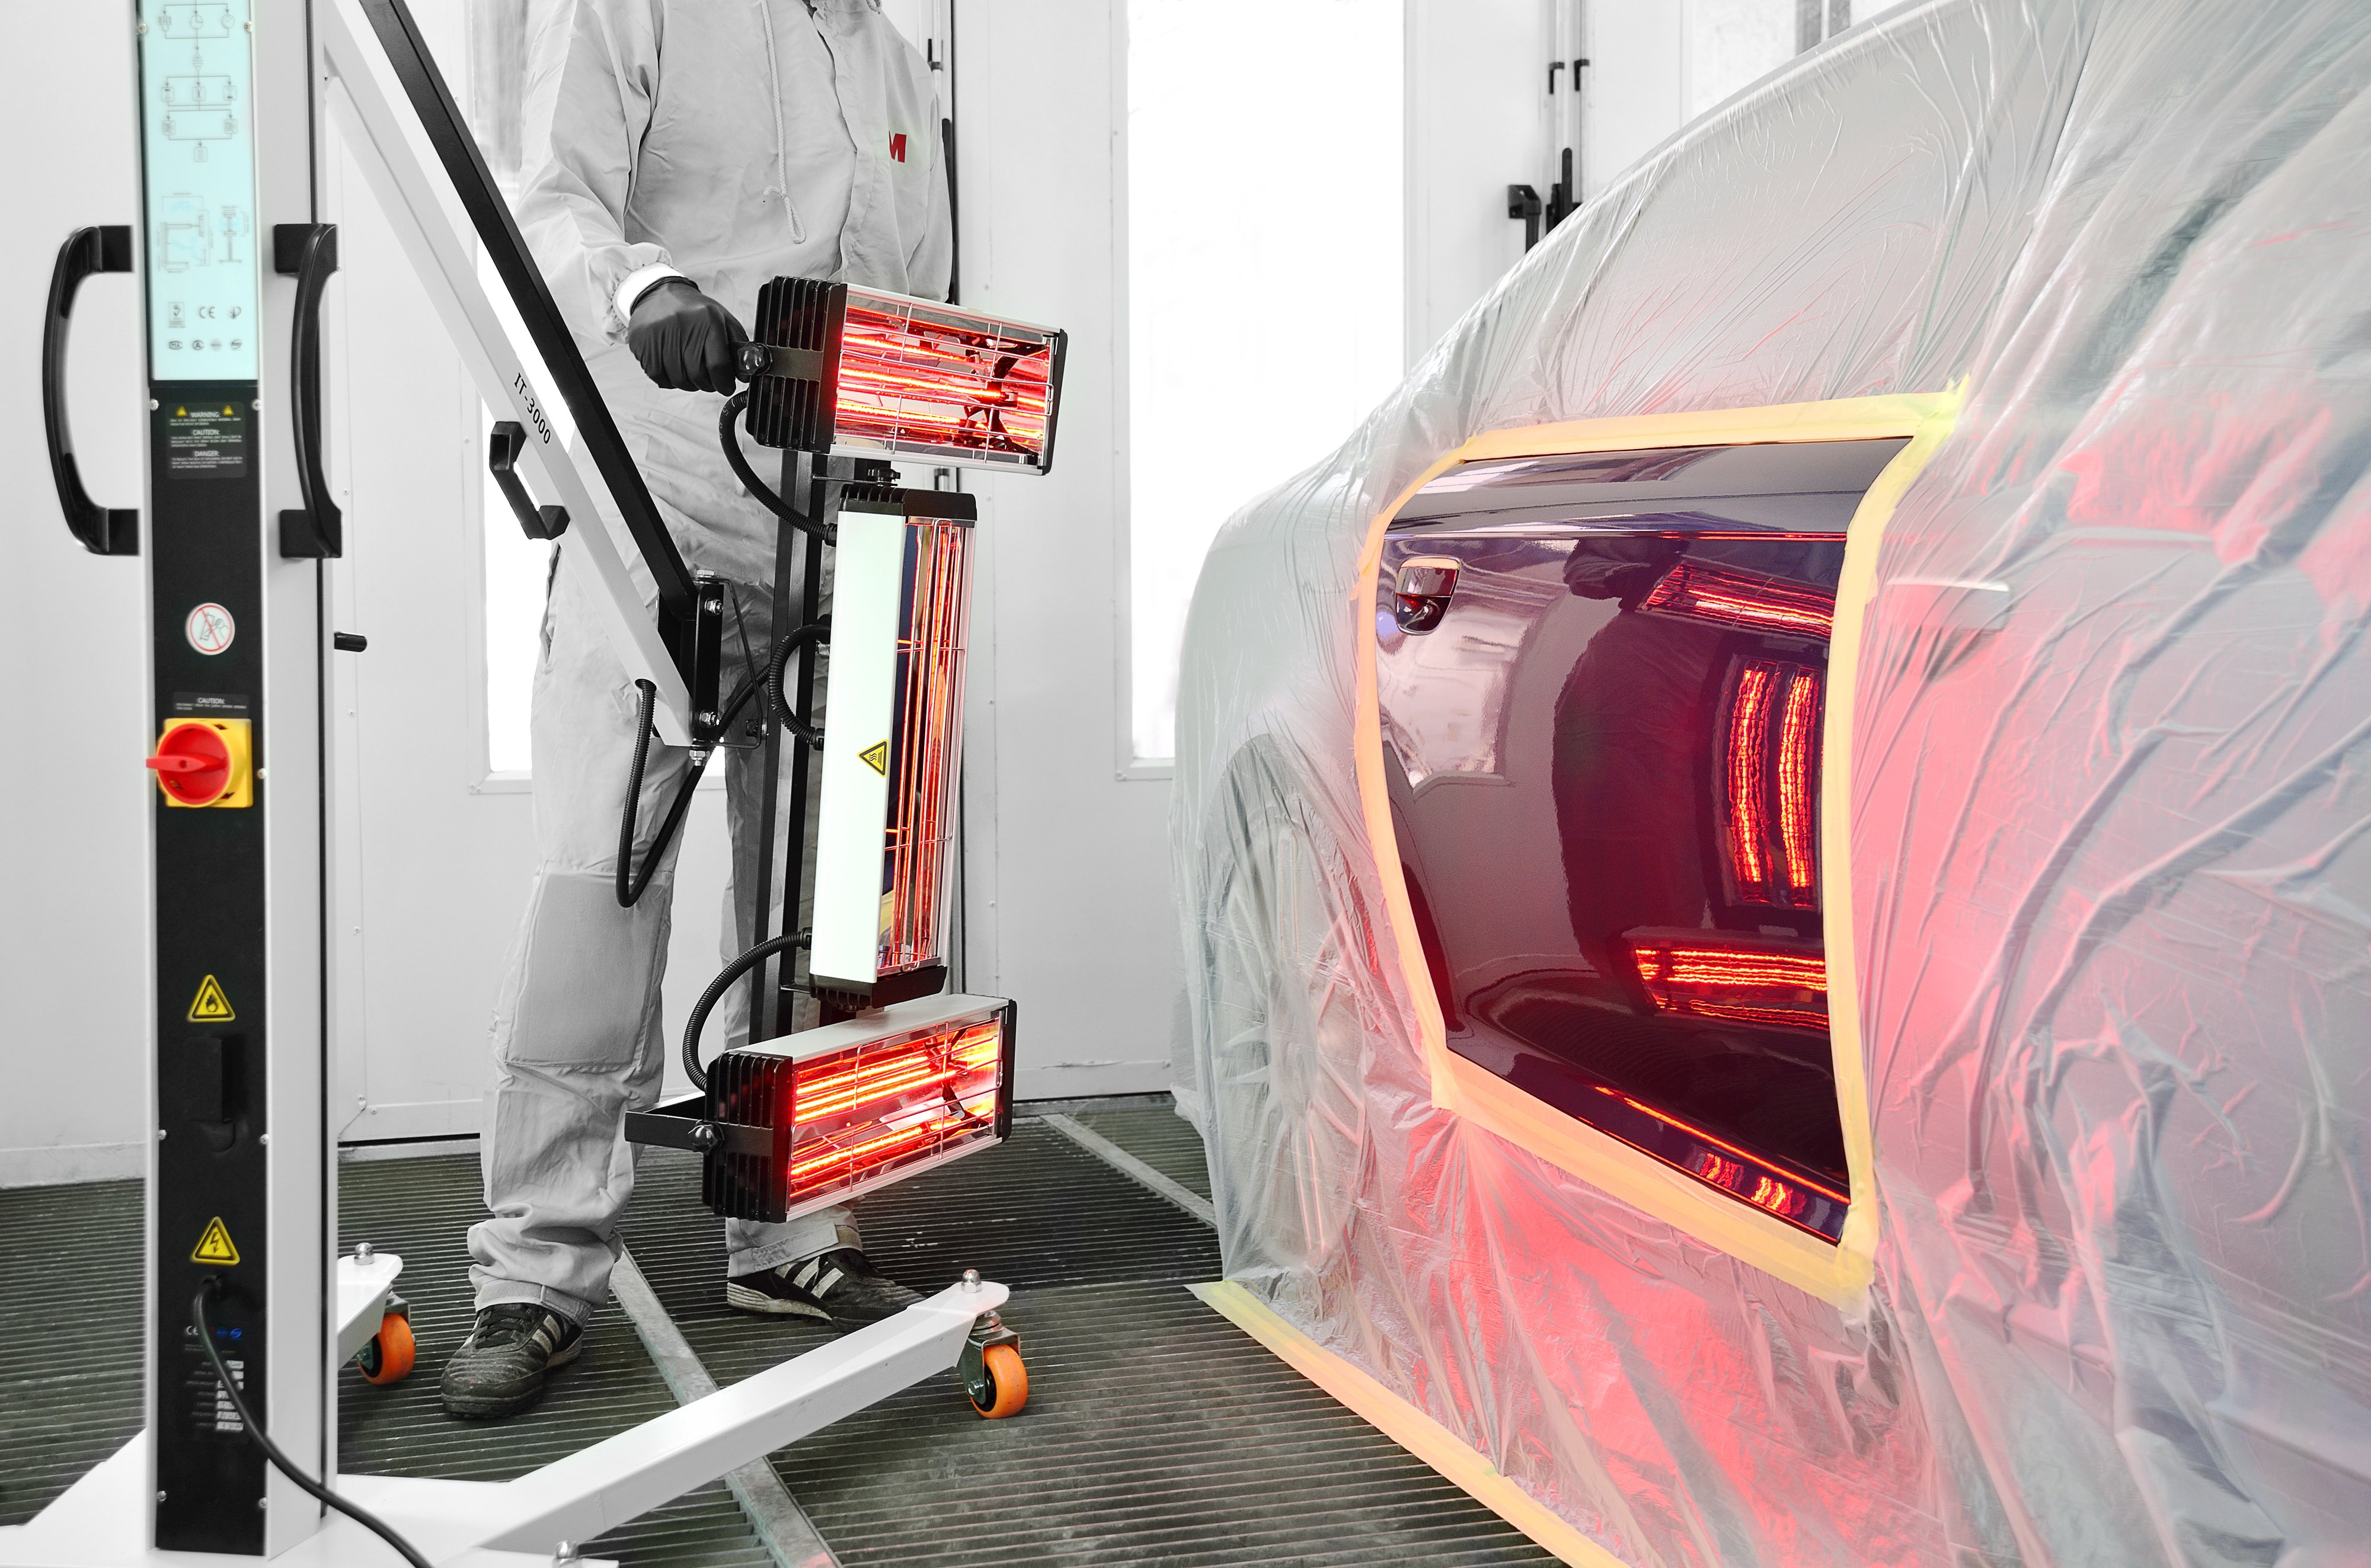 how effective are infrared curing lamps